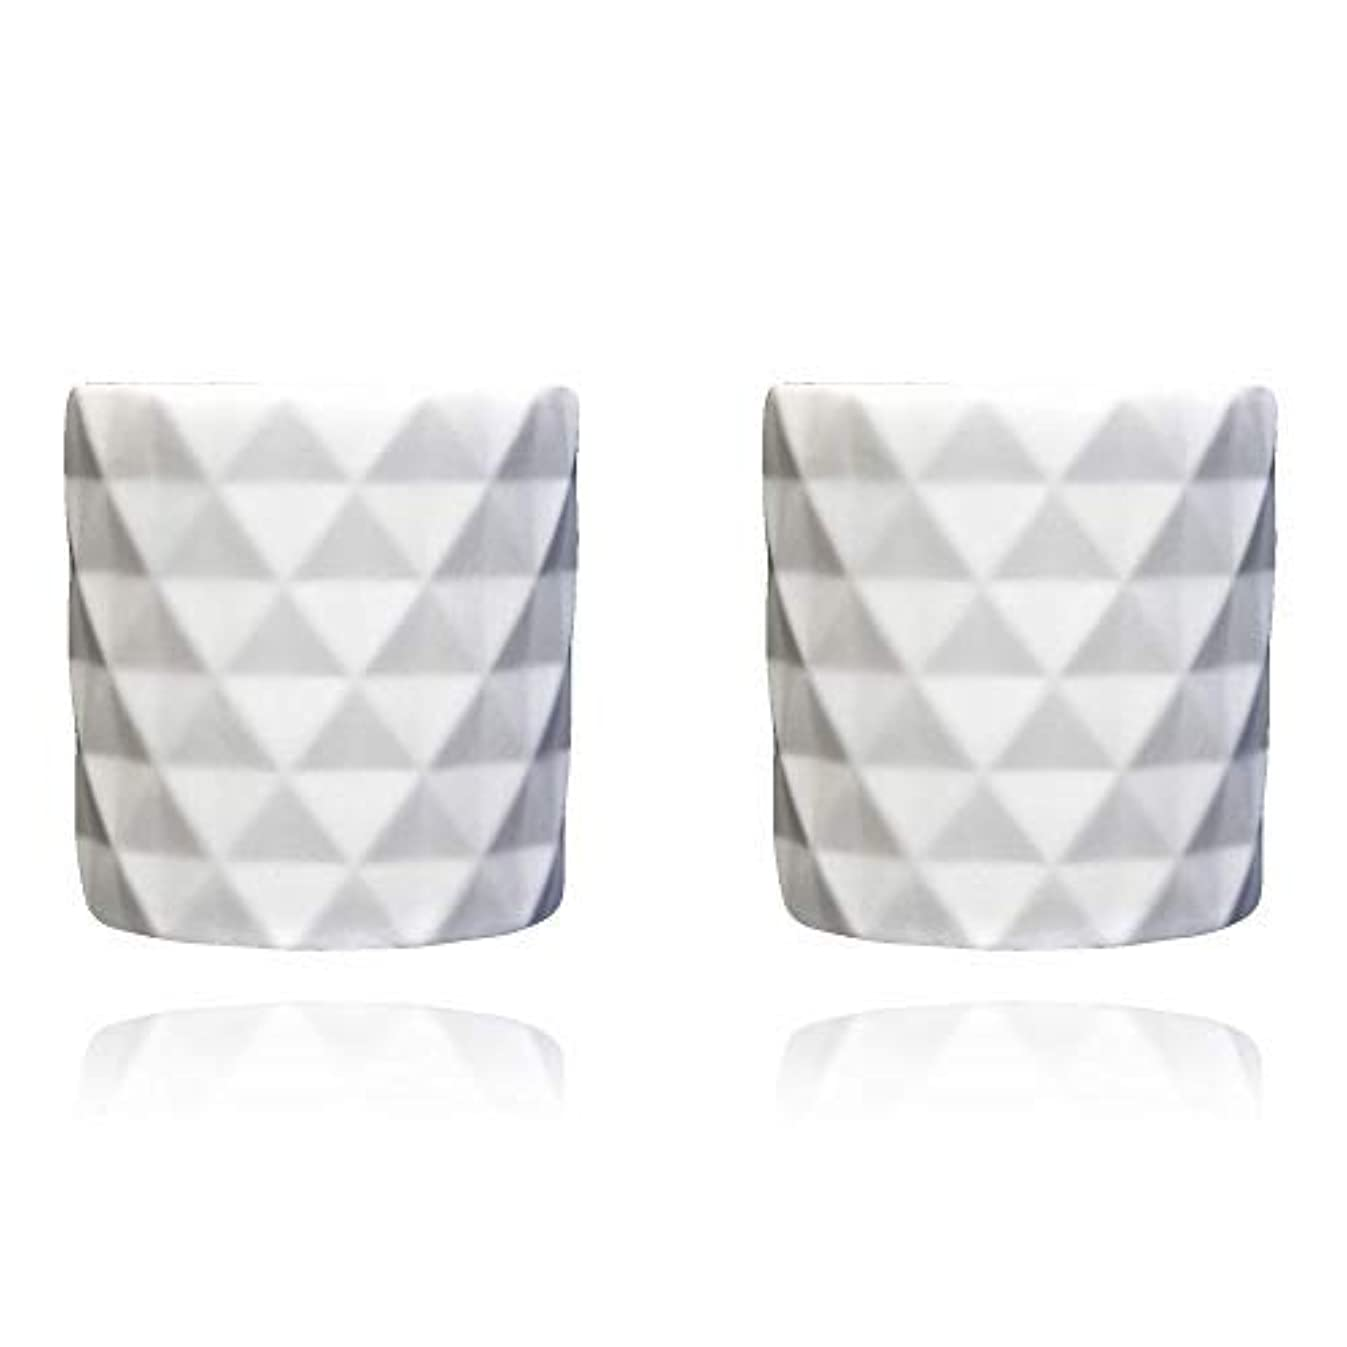 Diamonds Pattern Ceramic Candle Containers - Perfect for Making Candles - Set of 2, White Color Clay, Eco-Friendly, Decorations for Wedding, Party, Christmas, Halloween - WIKs Candle Making Supplies